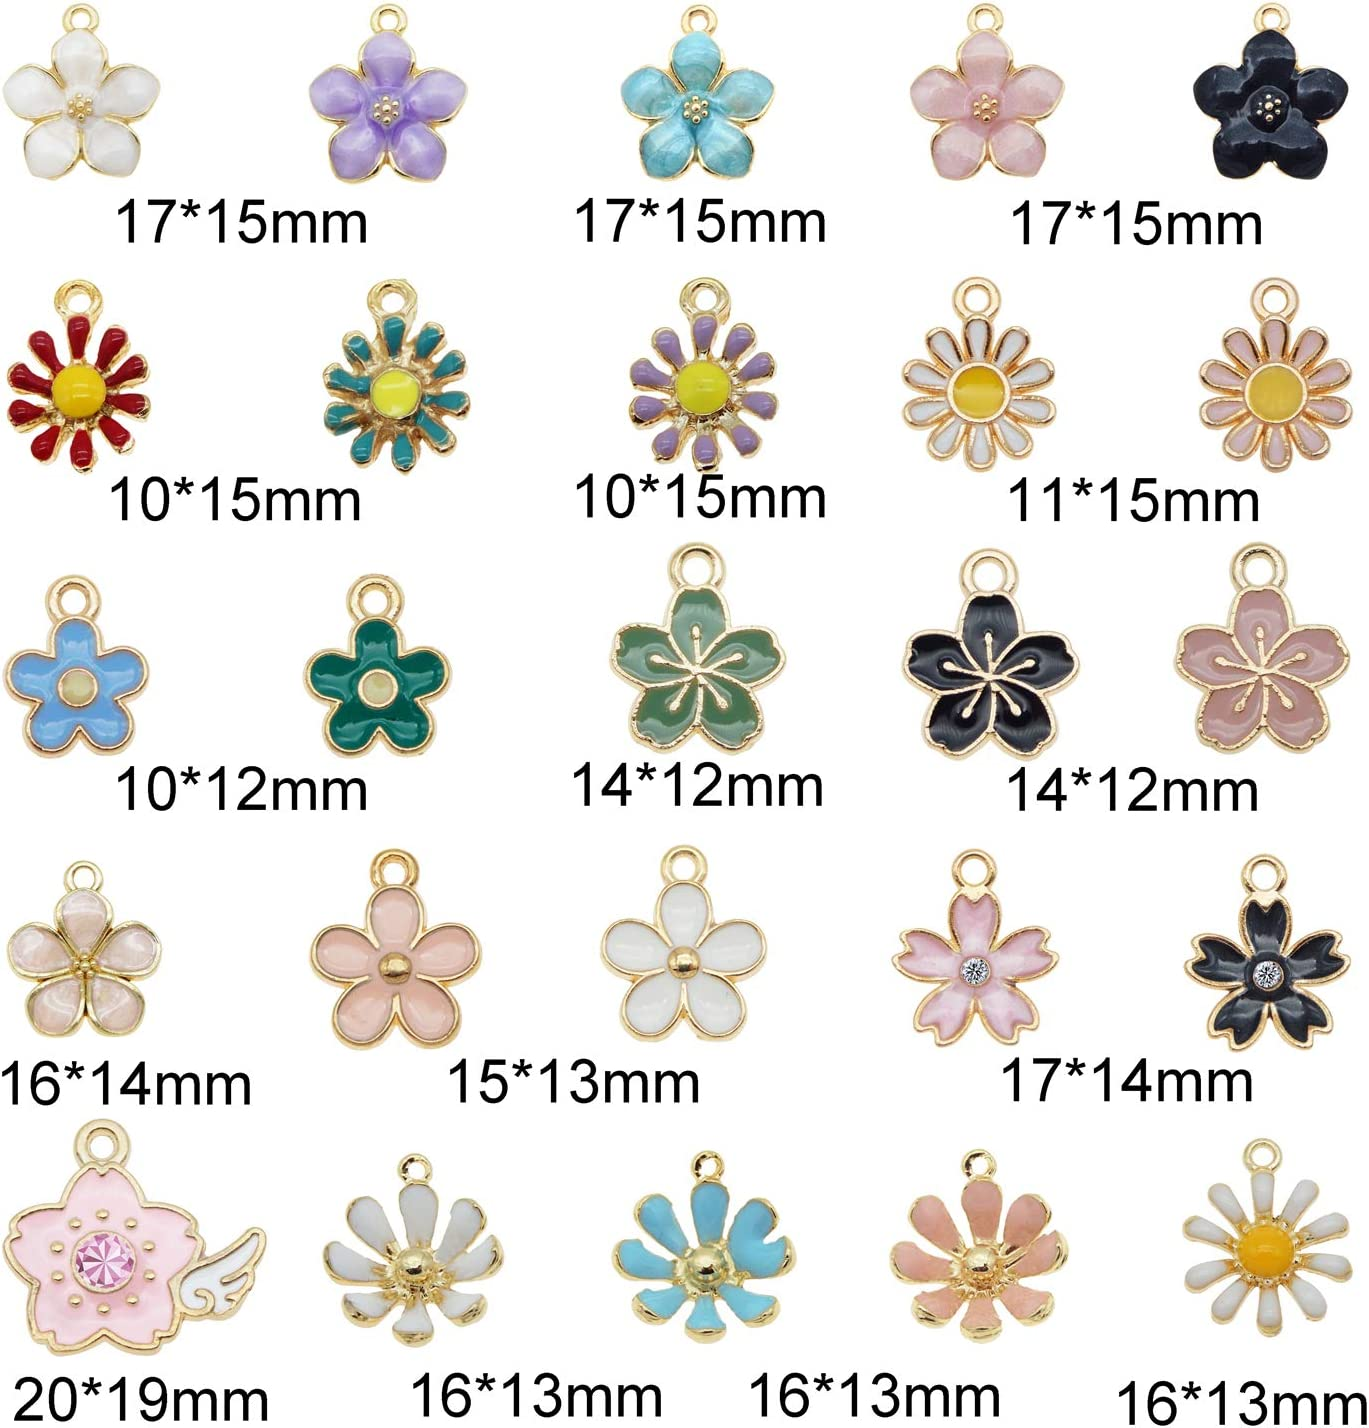 JJG 40PCS Colorful Assorted Mixed Flowers Floral Enamel Plated Charms Pendant for Necklace Bracelet Earring Jewelry DIY Making Findings